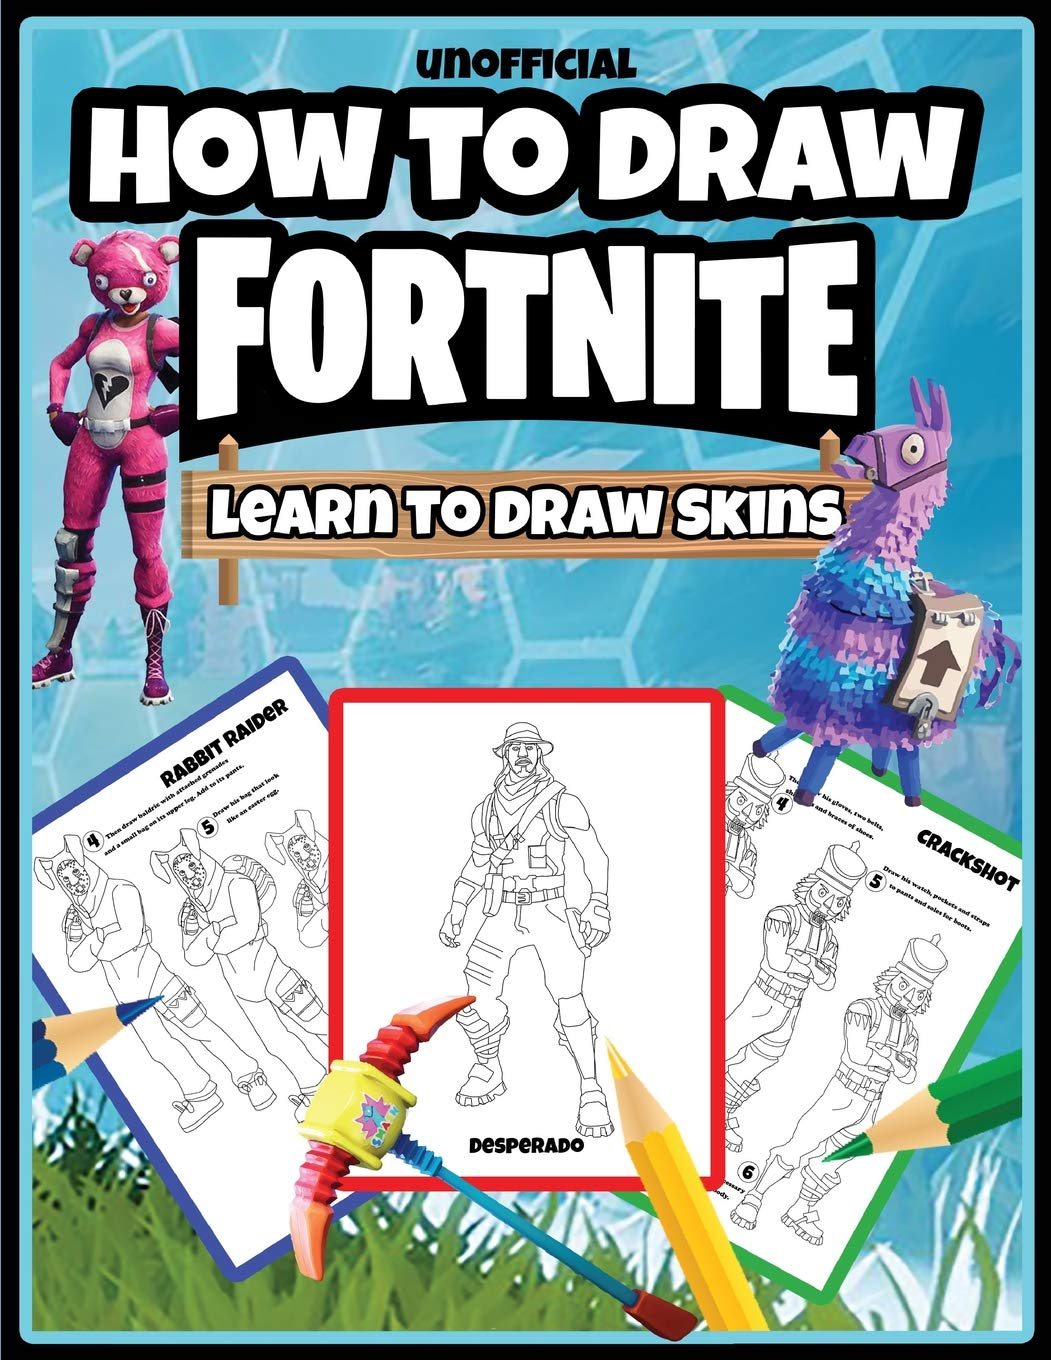 How To Draw Fortnite Learn To Draw Skins Unofficial Amazon Co Uk